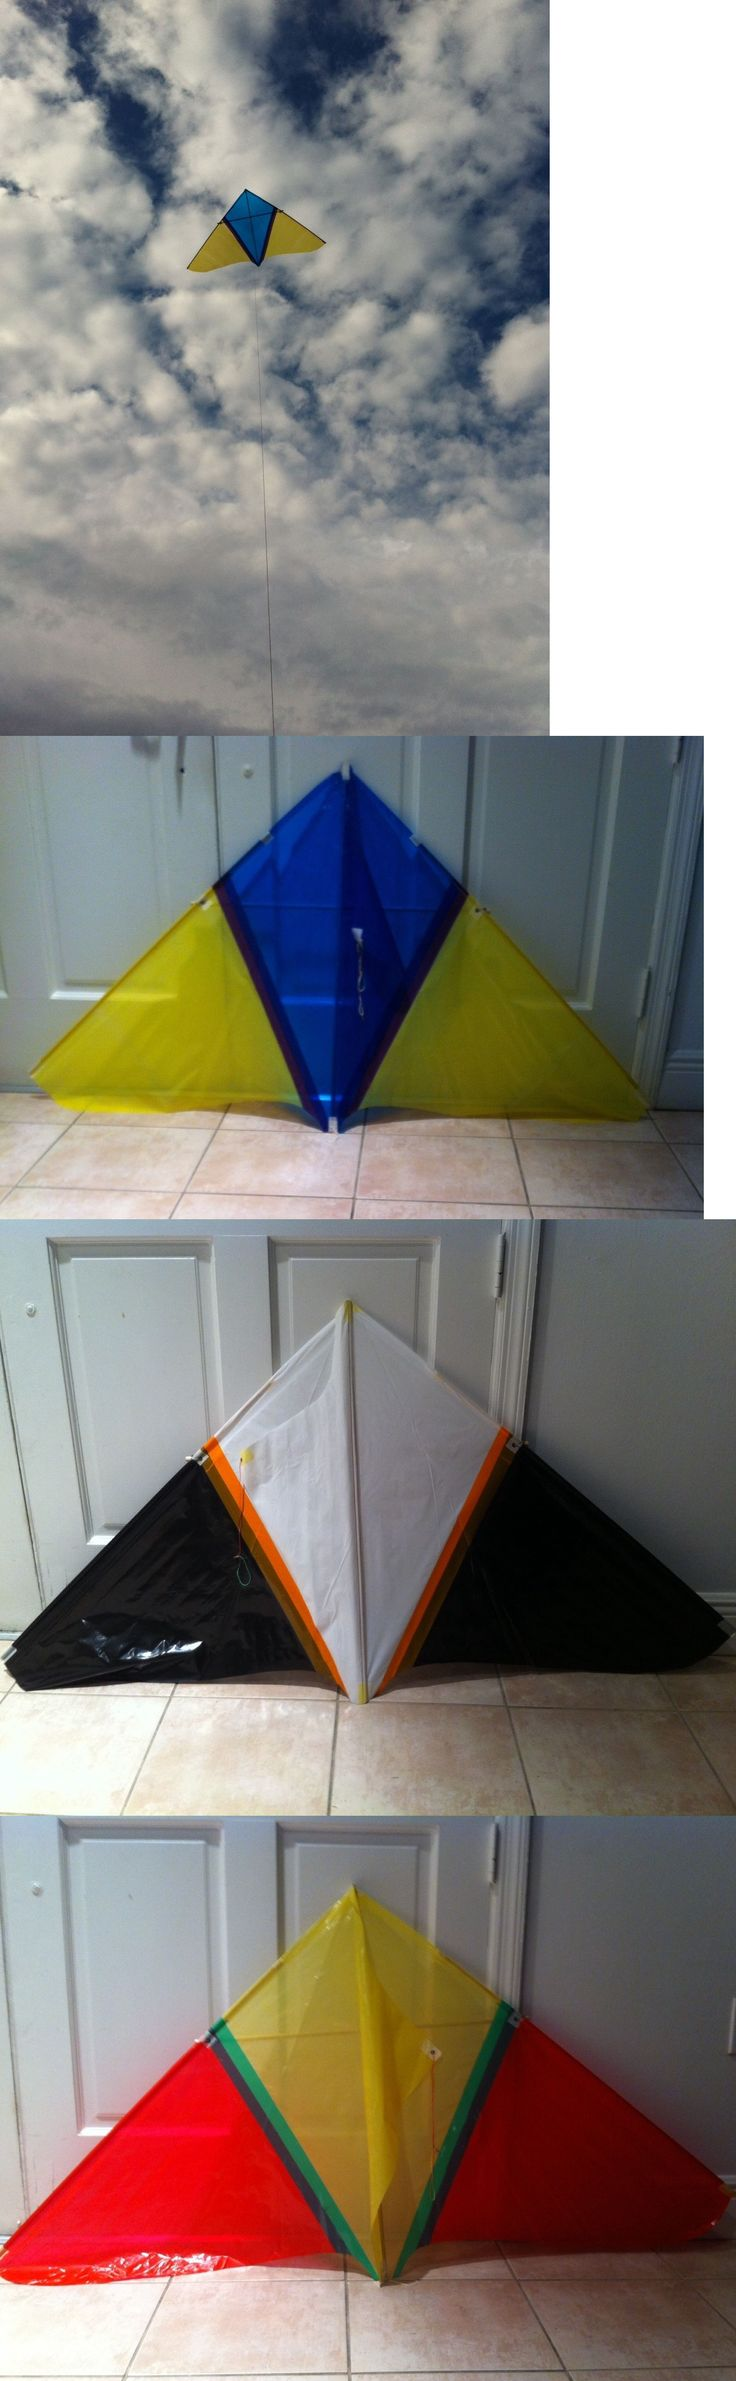 Kites Lines 114264: ¡9 Kites!, 4 Prism Shape, 1.5M Big And 5 Basic Kites All Comes With Line And Bag -> BUY IT NOW ONLY: $99.99 on eBay!